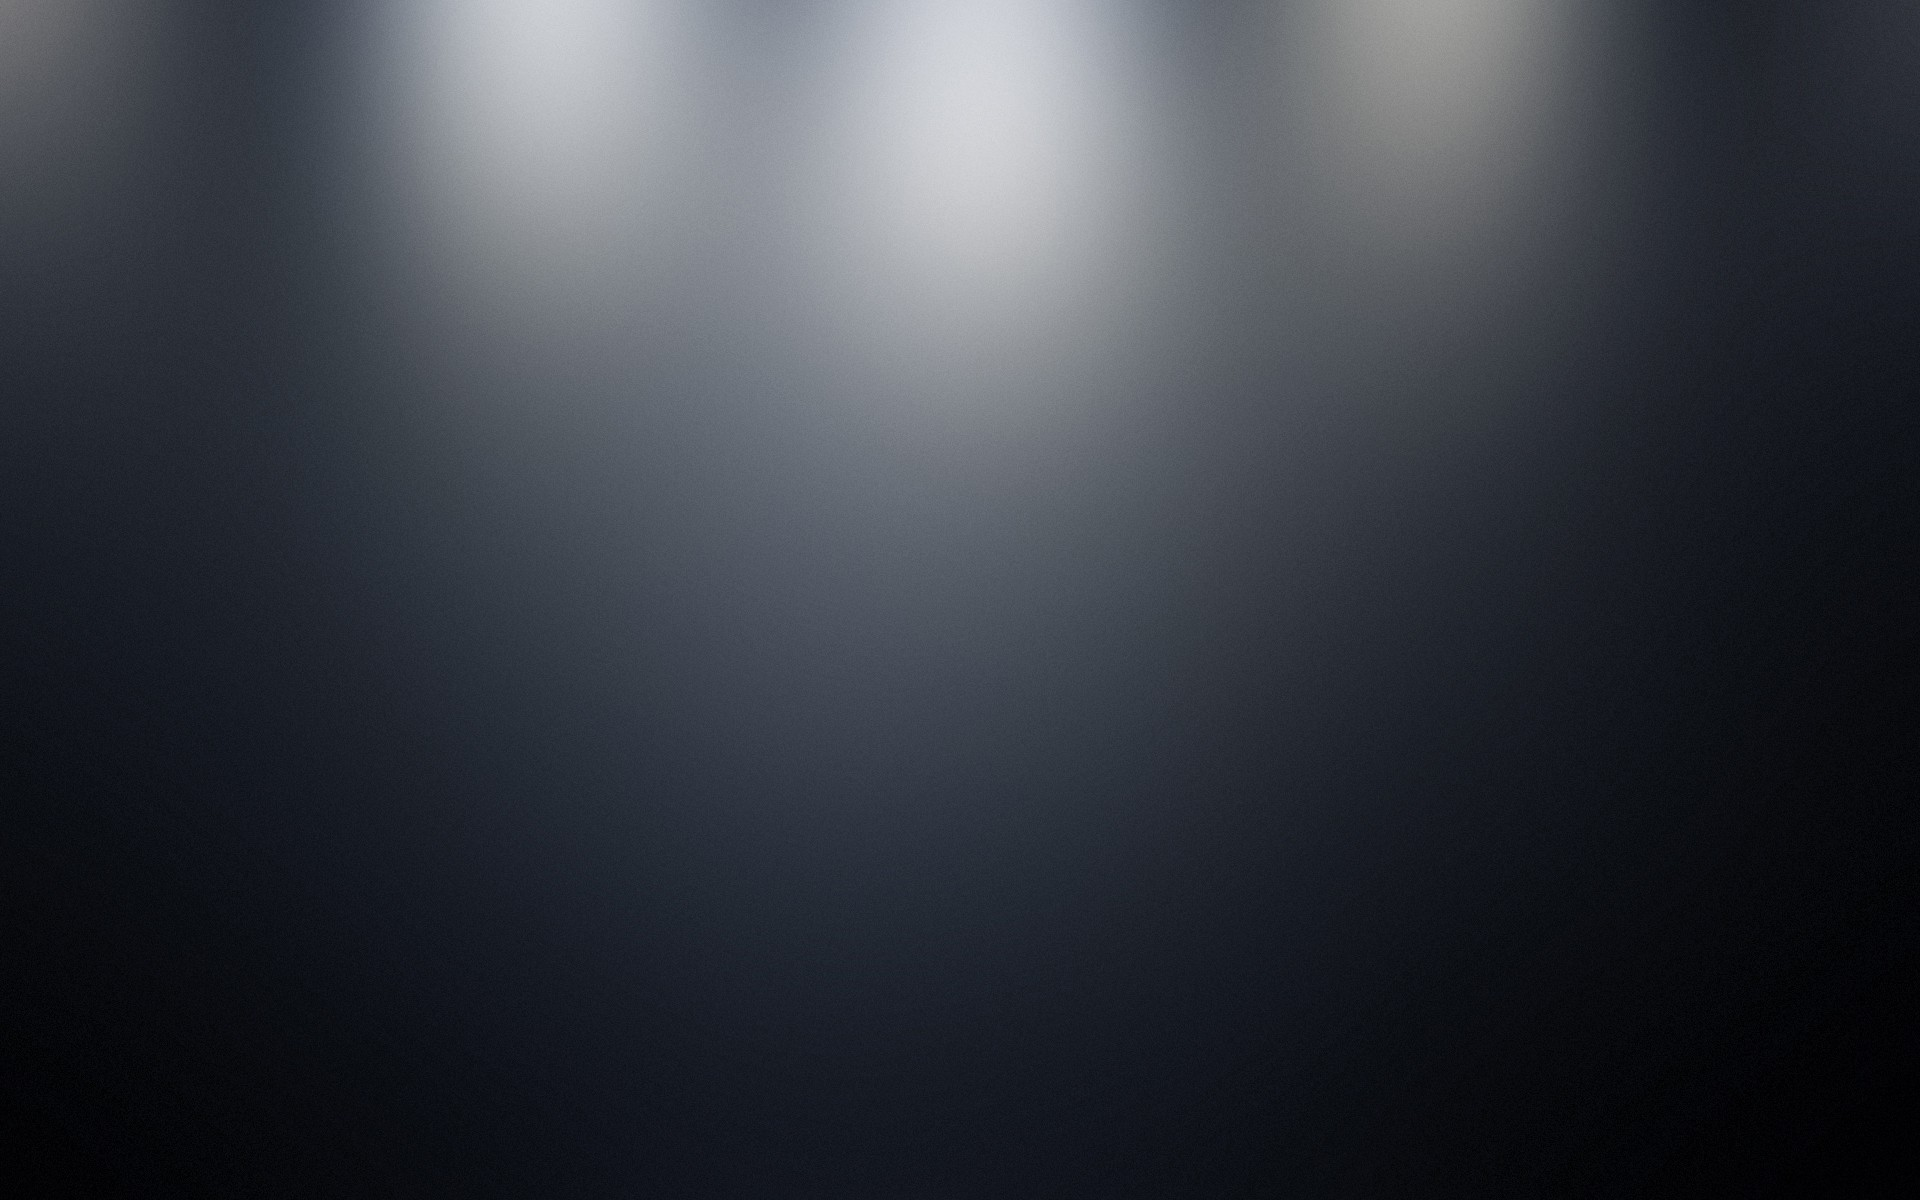 grey-gradient-abstract-hd-wallpaper-1920x1200-4431.jpg